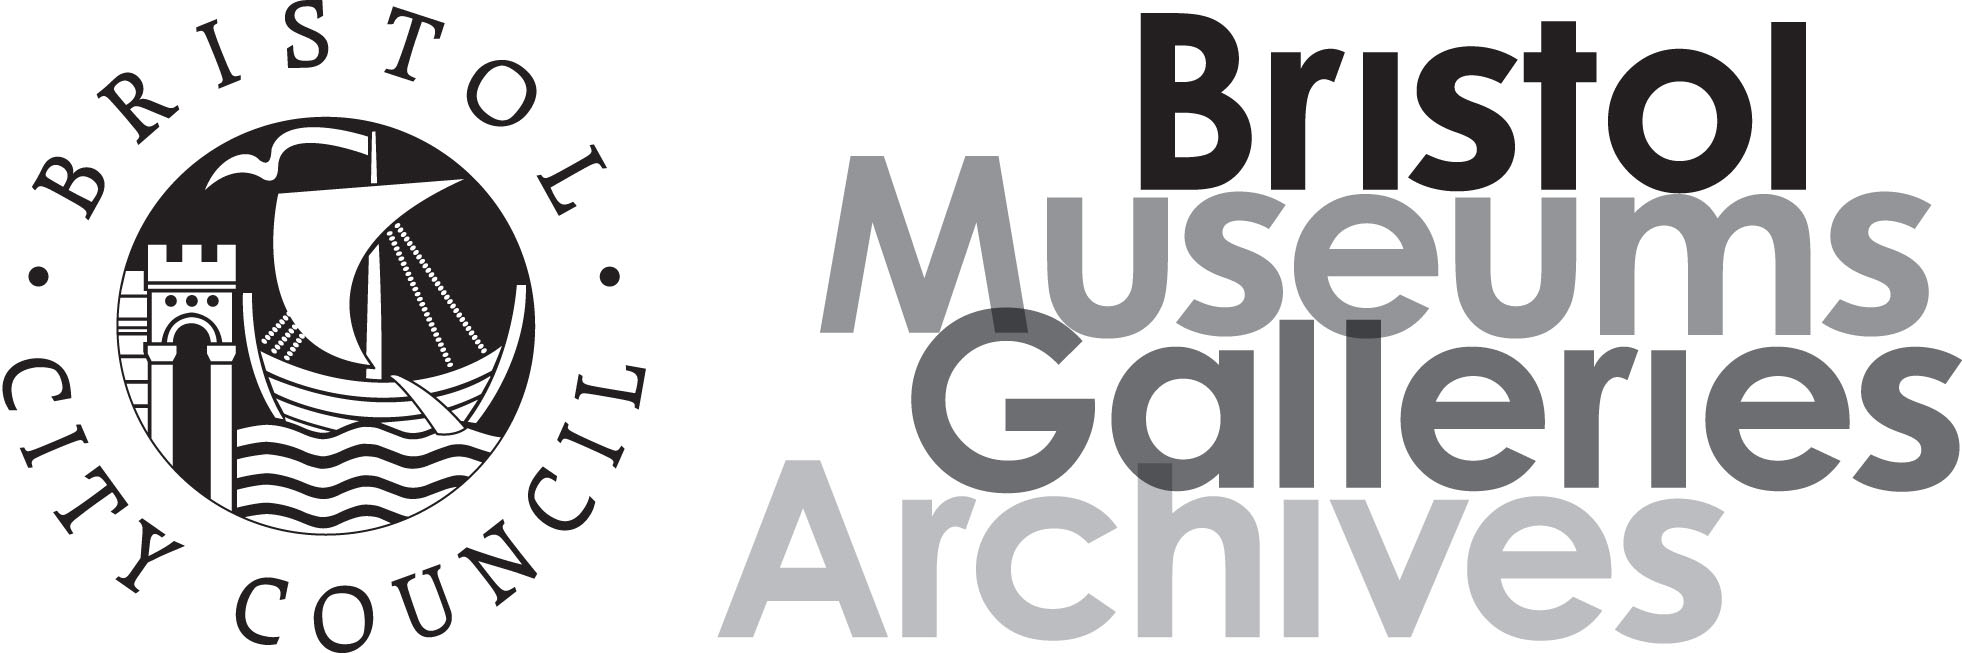 Bristol Museums Galleries and Archives